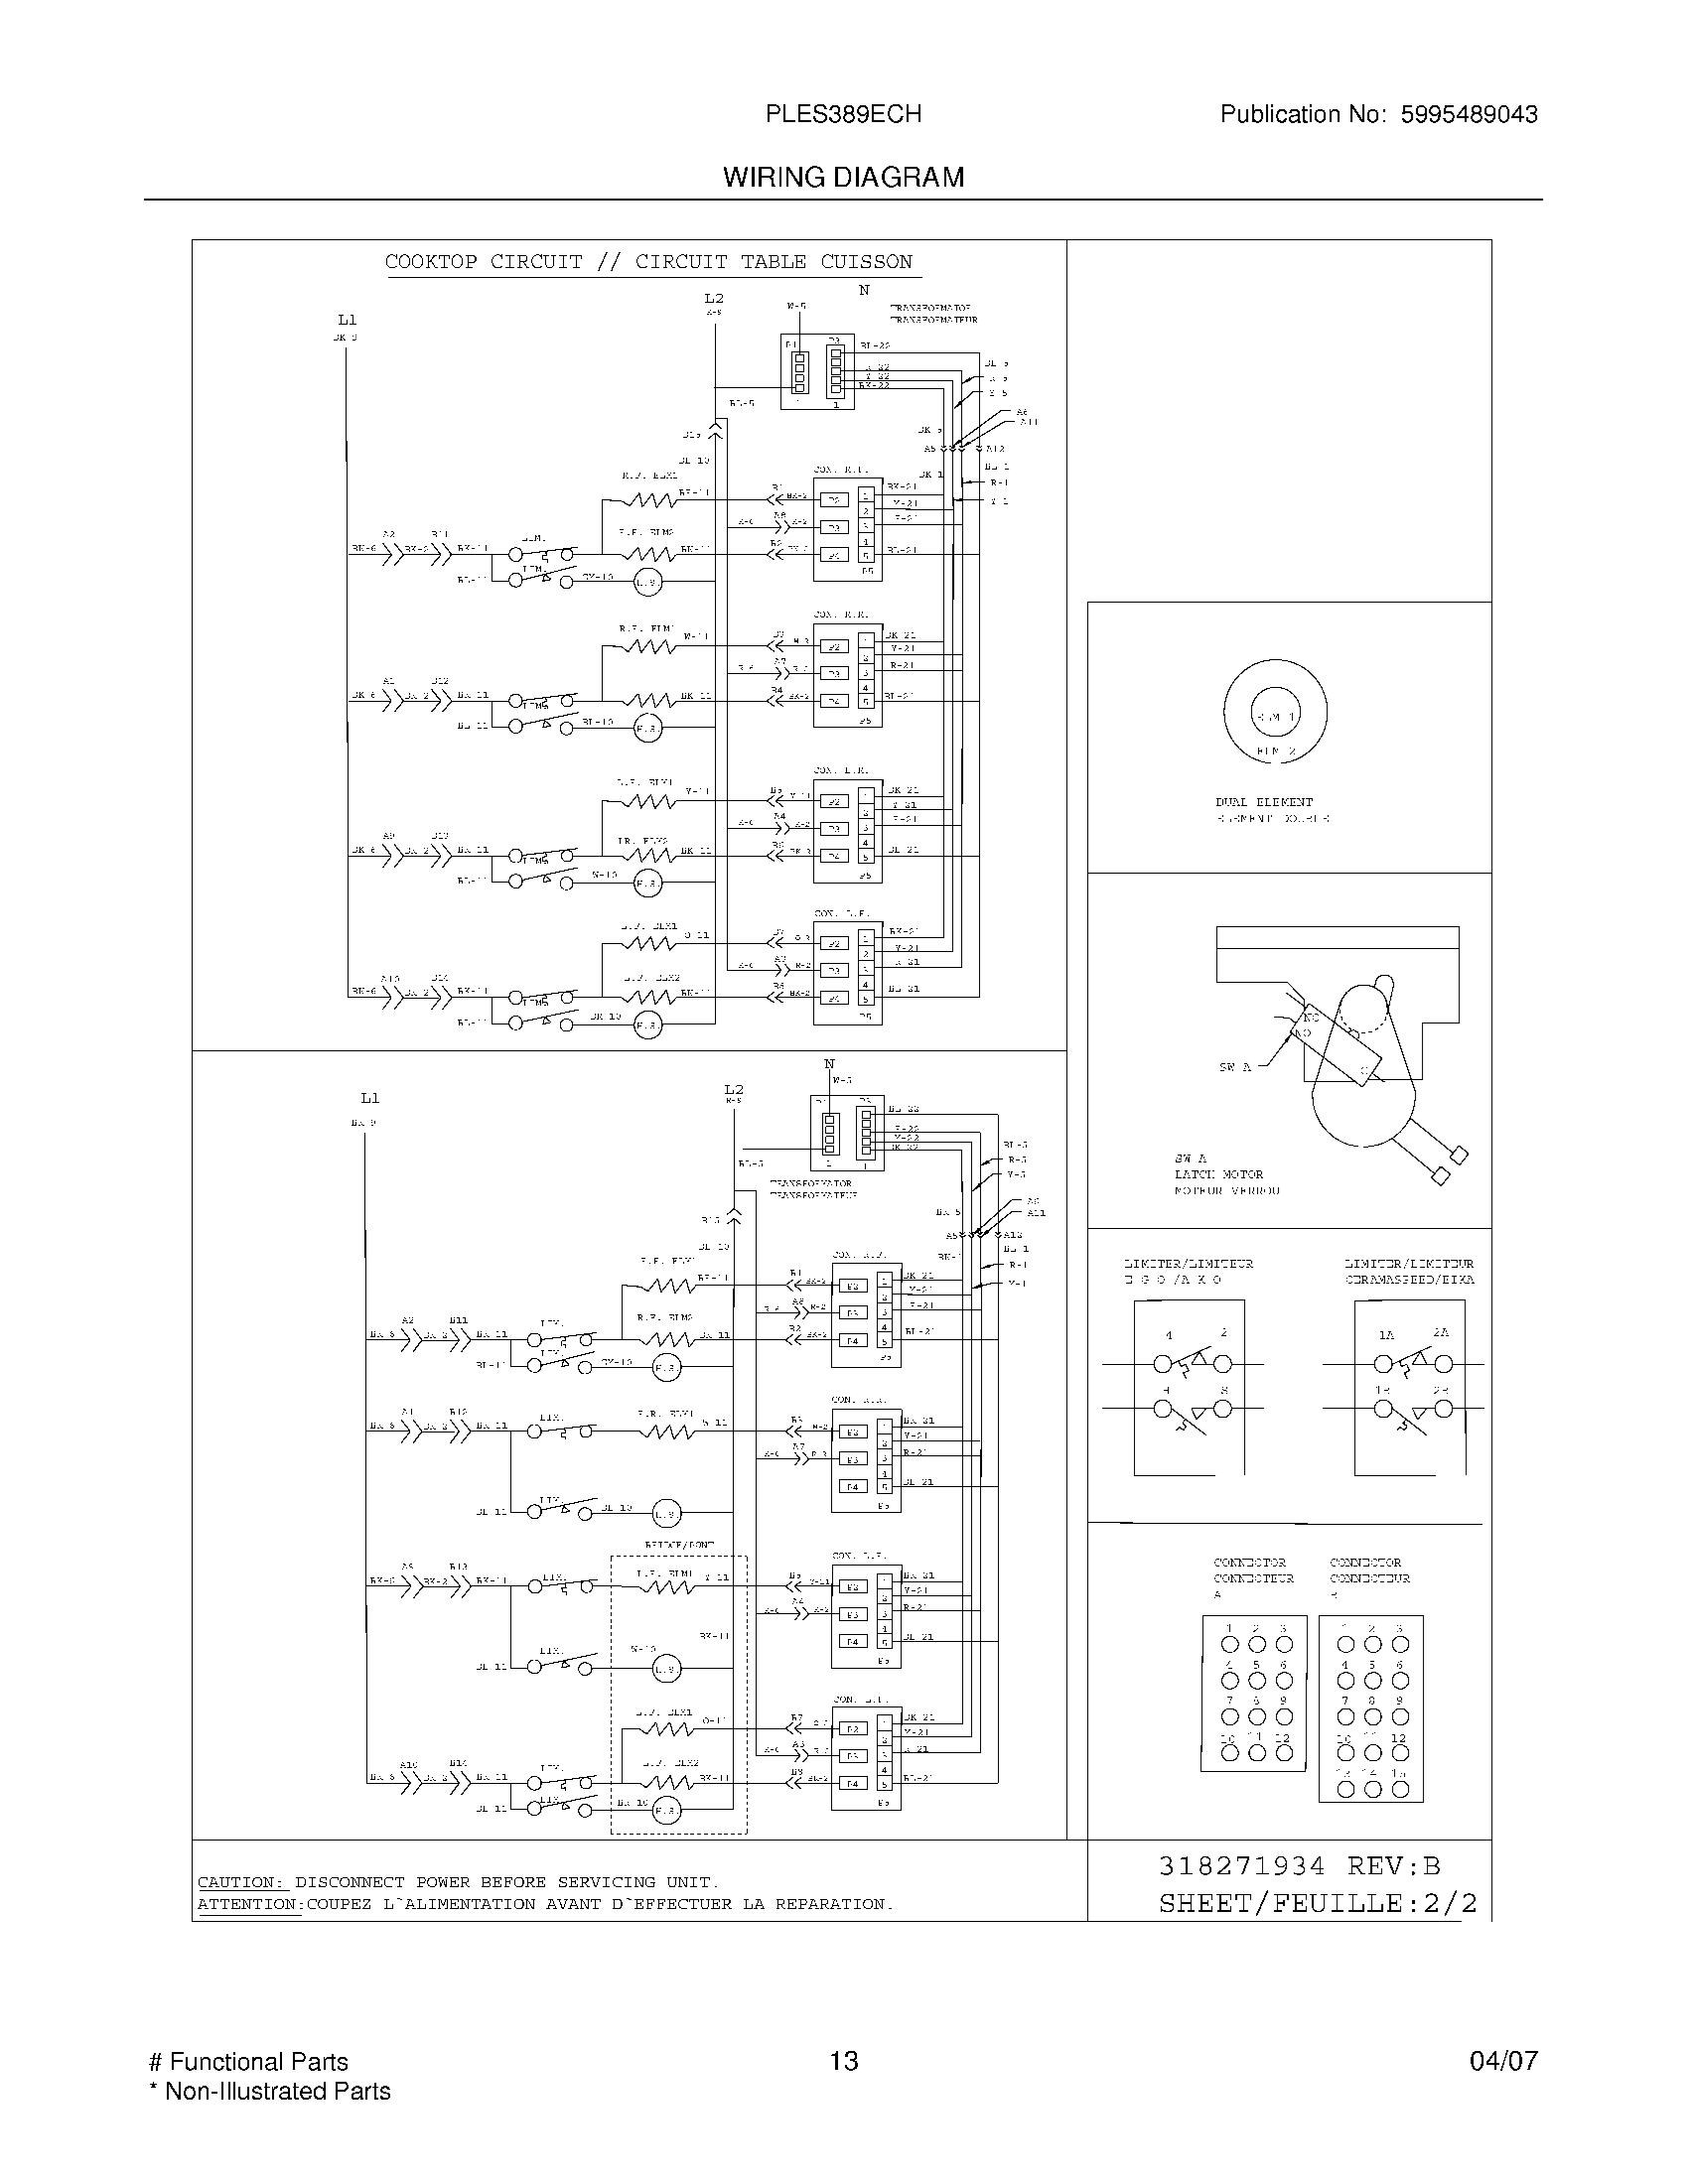 ElectroluxImg_19000101 20150717_00146085 appliance schematics dolgular com qo260gfi wiring diagram at gsmx.co